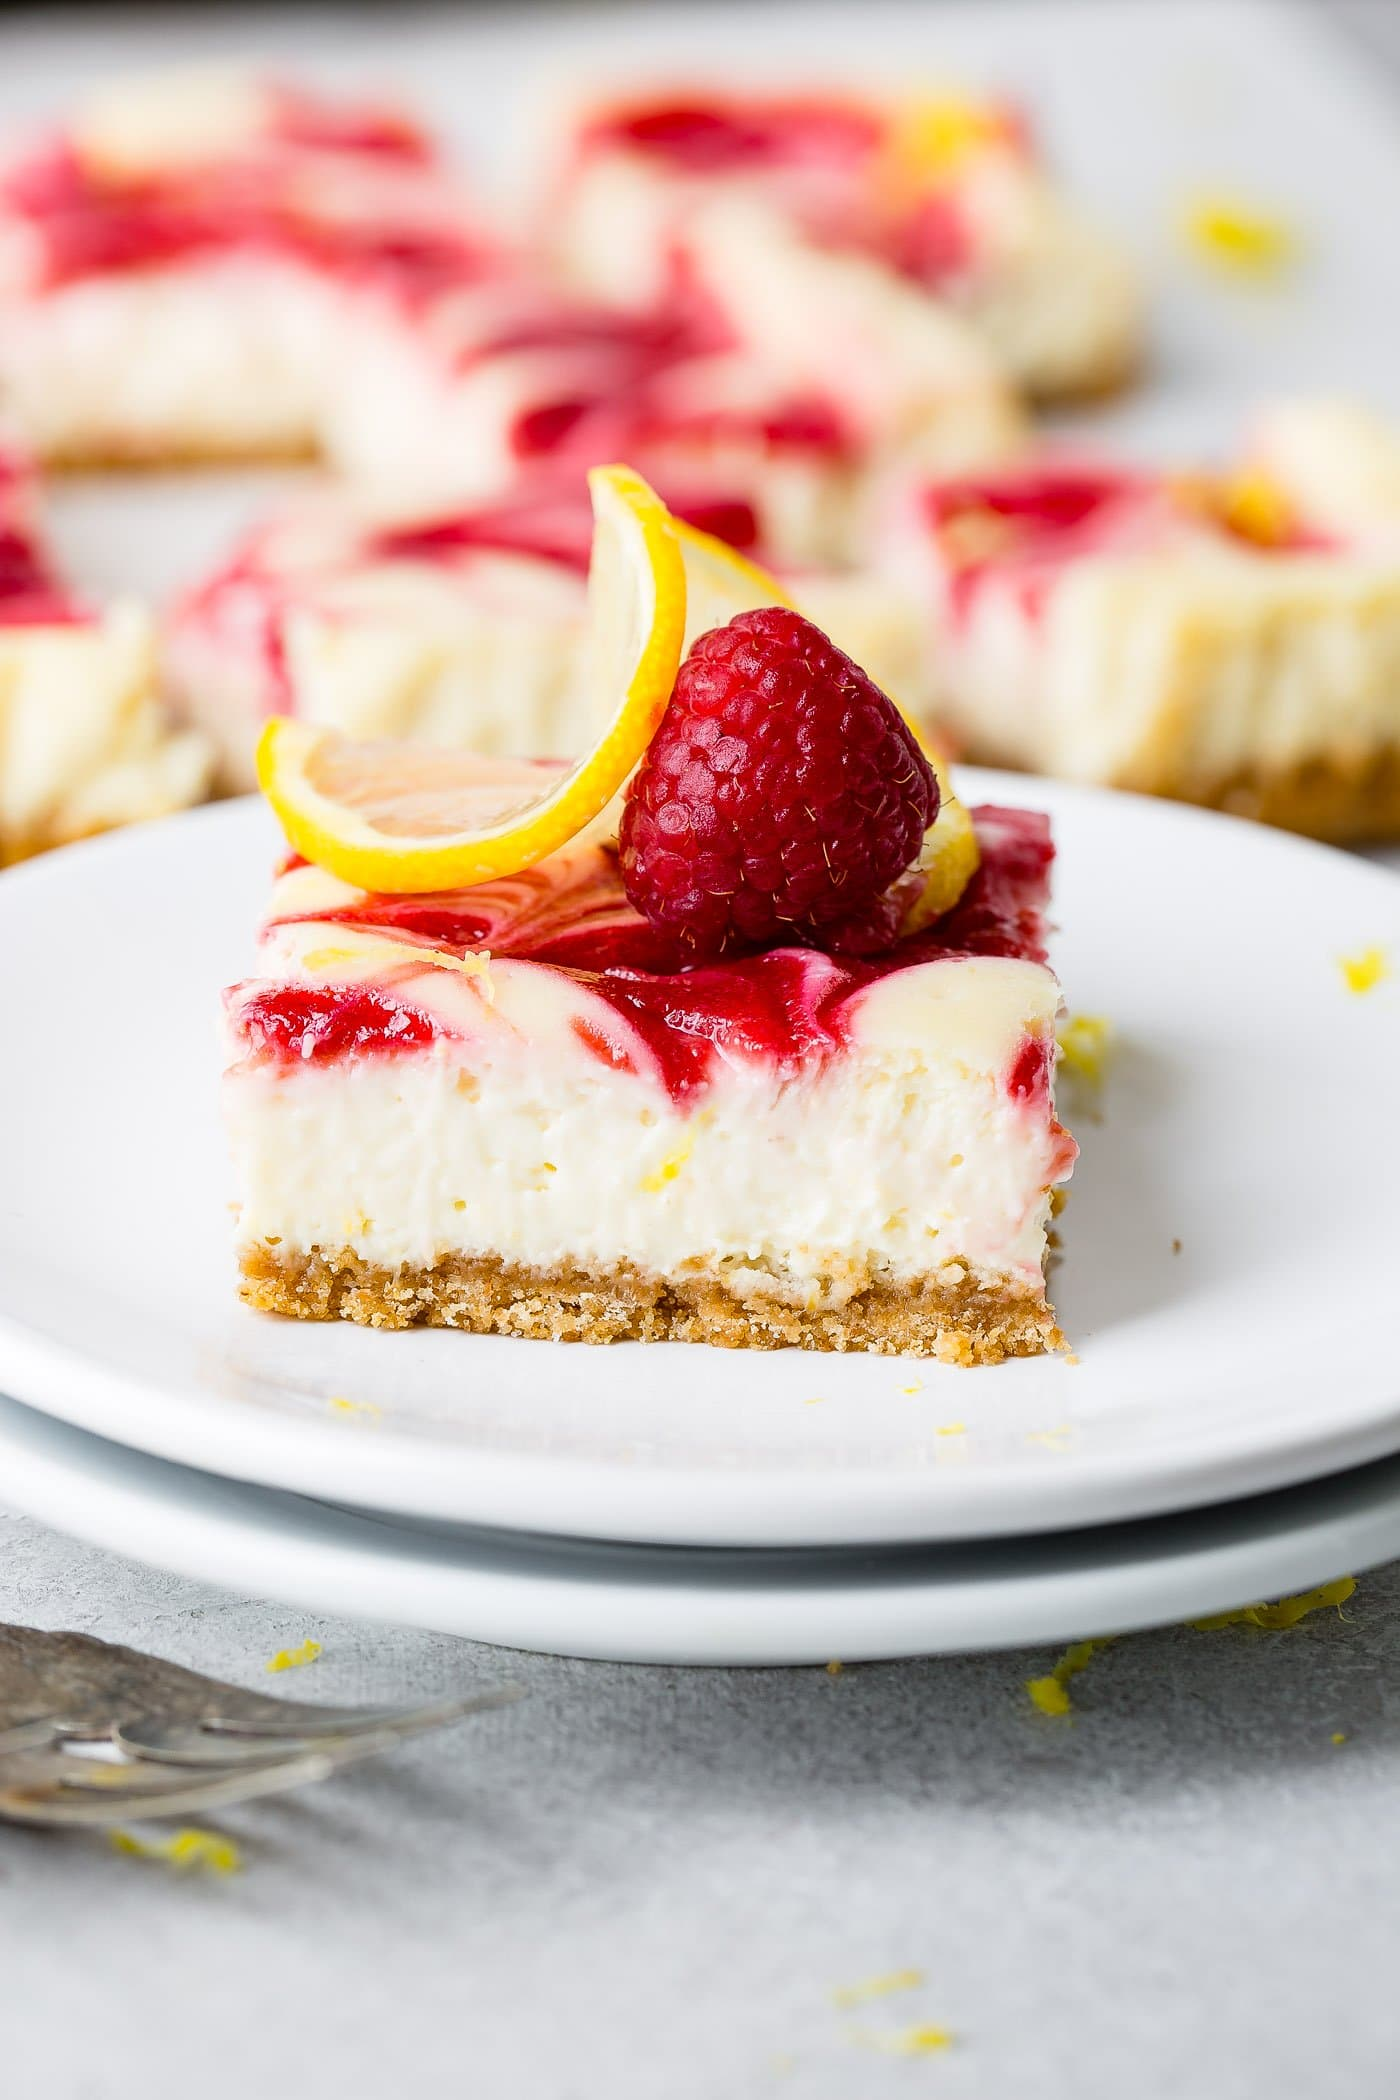 A serving of swirled raspberry lemon cheesecake on a dessert plate. It is topped with a thin slice of lemon and a raspberry. There are other pieces of cheesecake in the background.